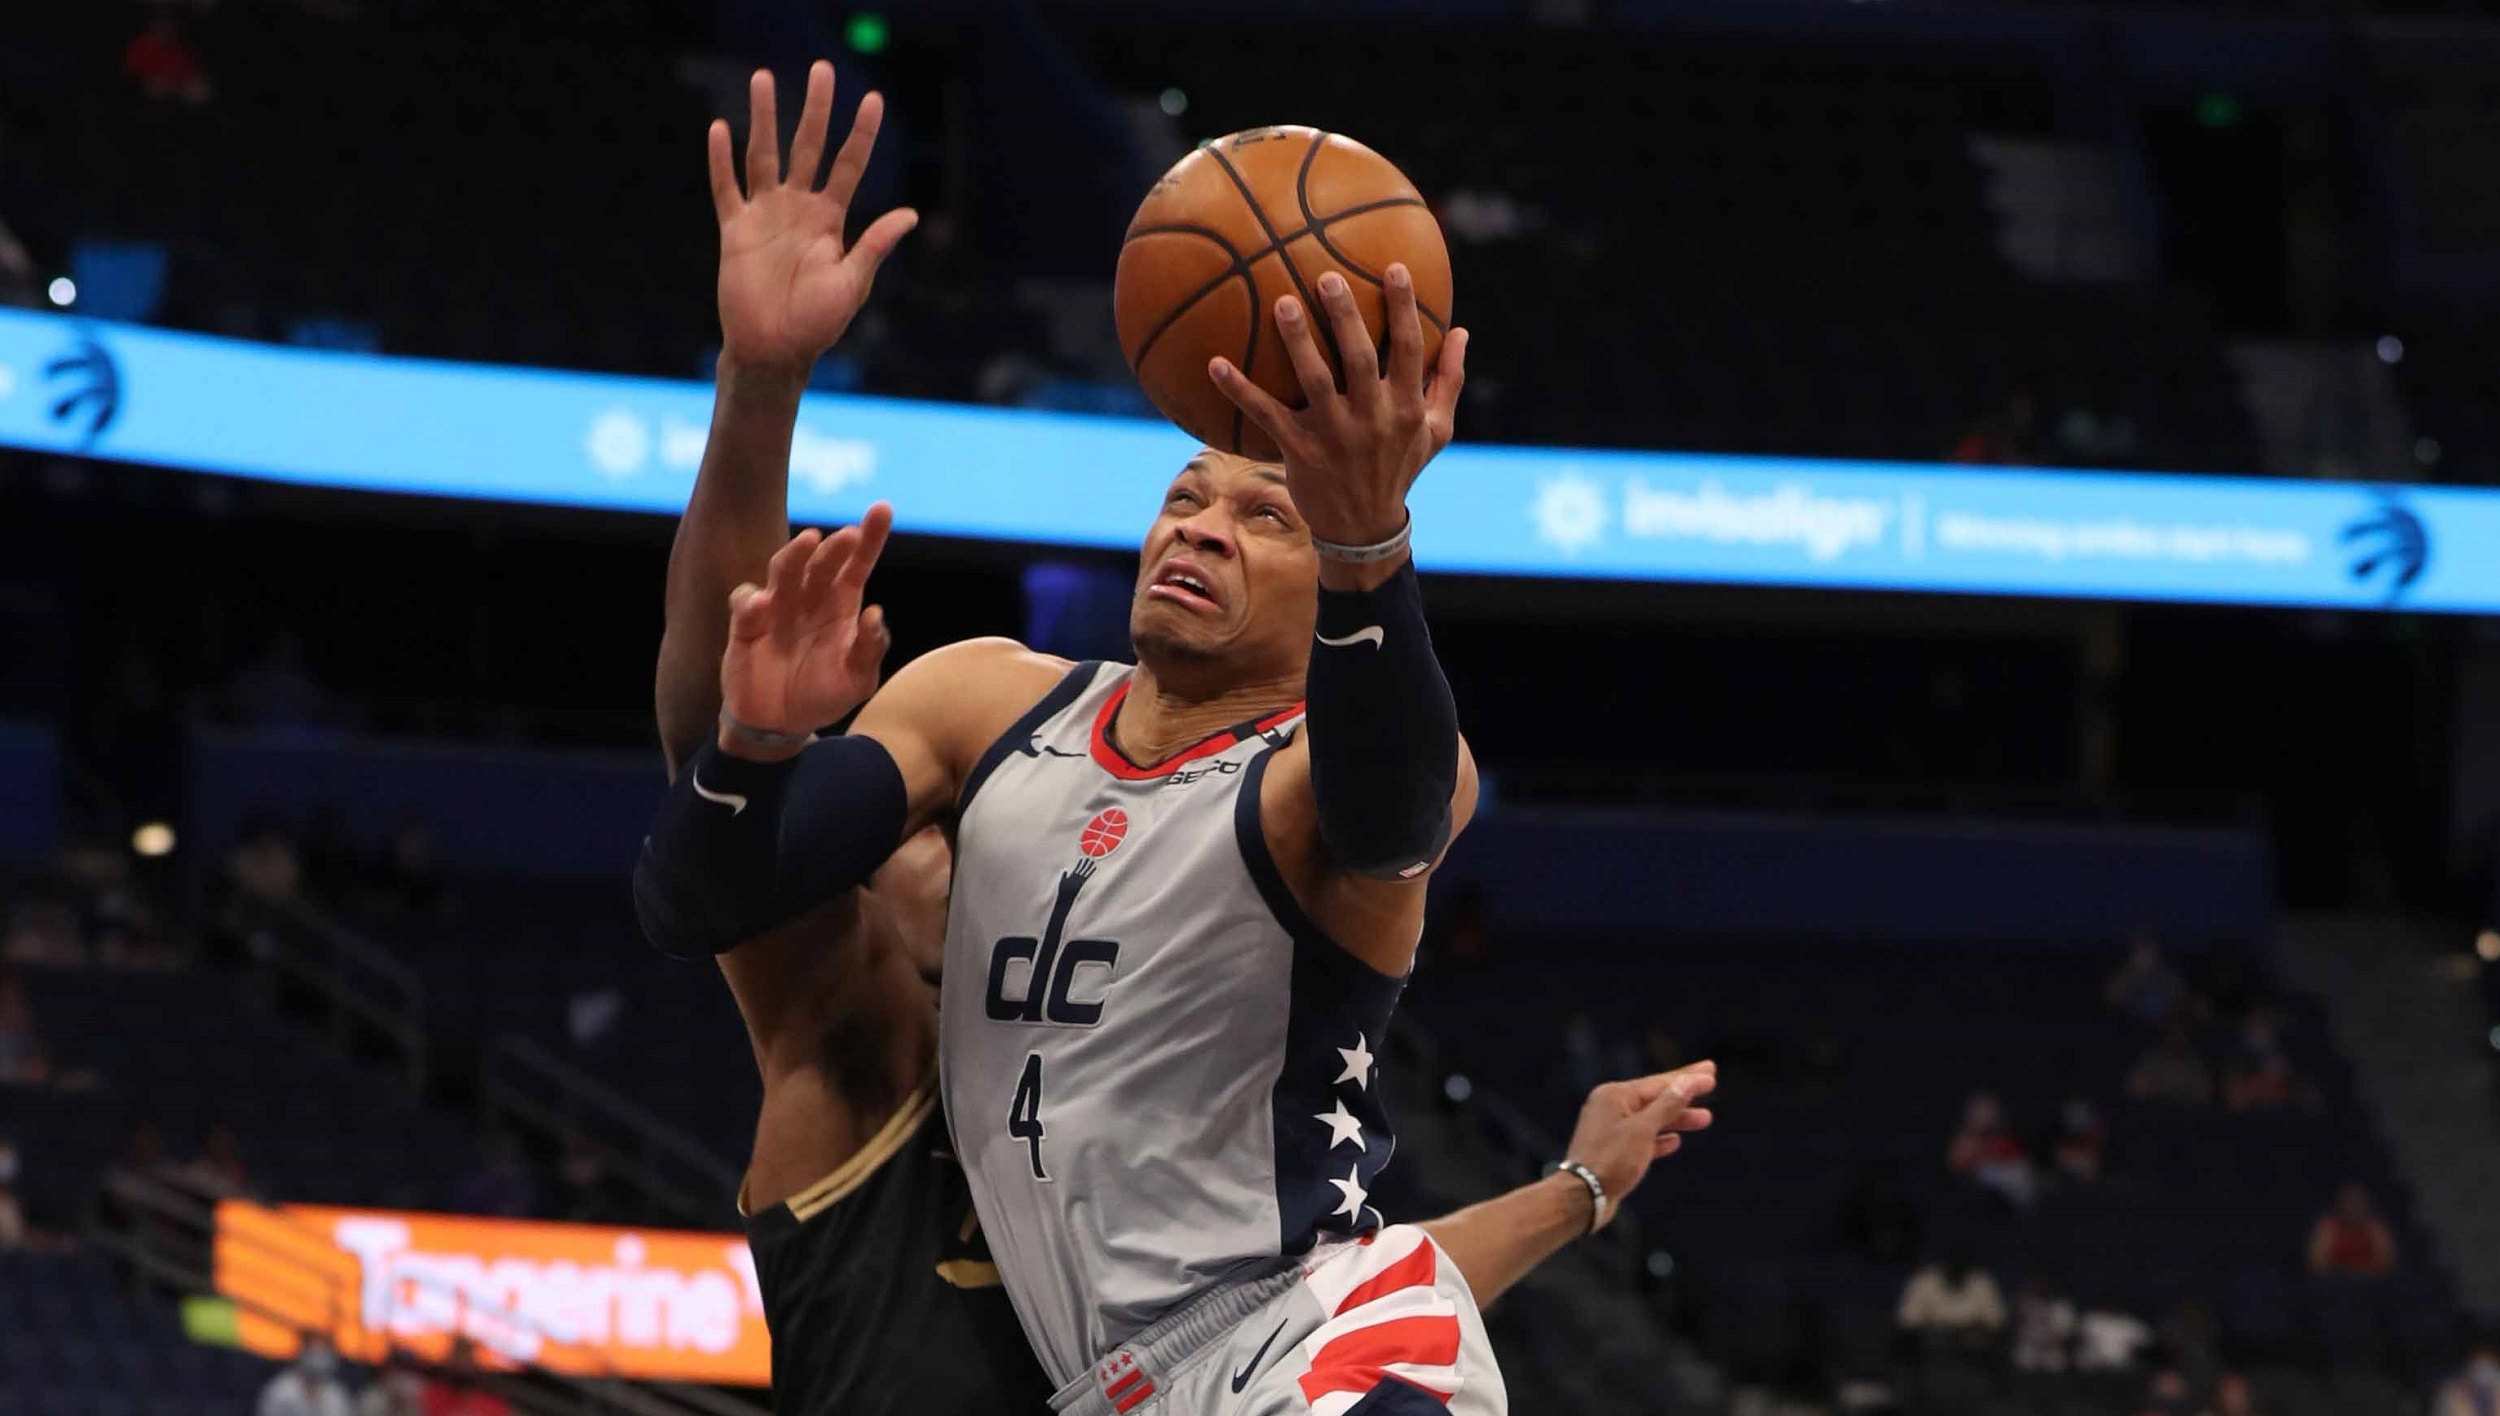 Russell Westbrook basks in milestone moment